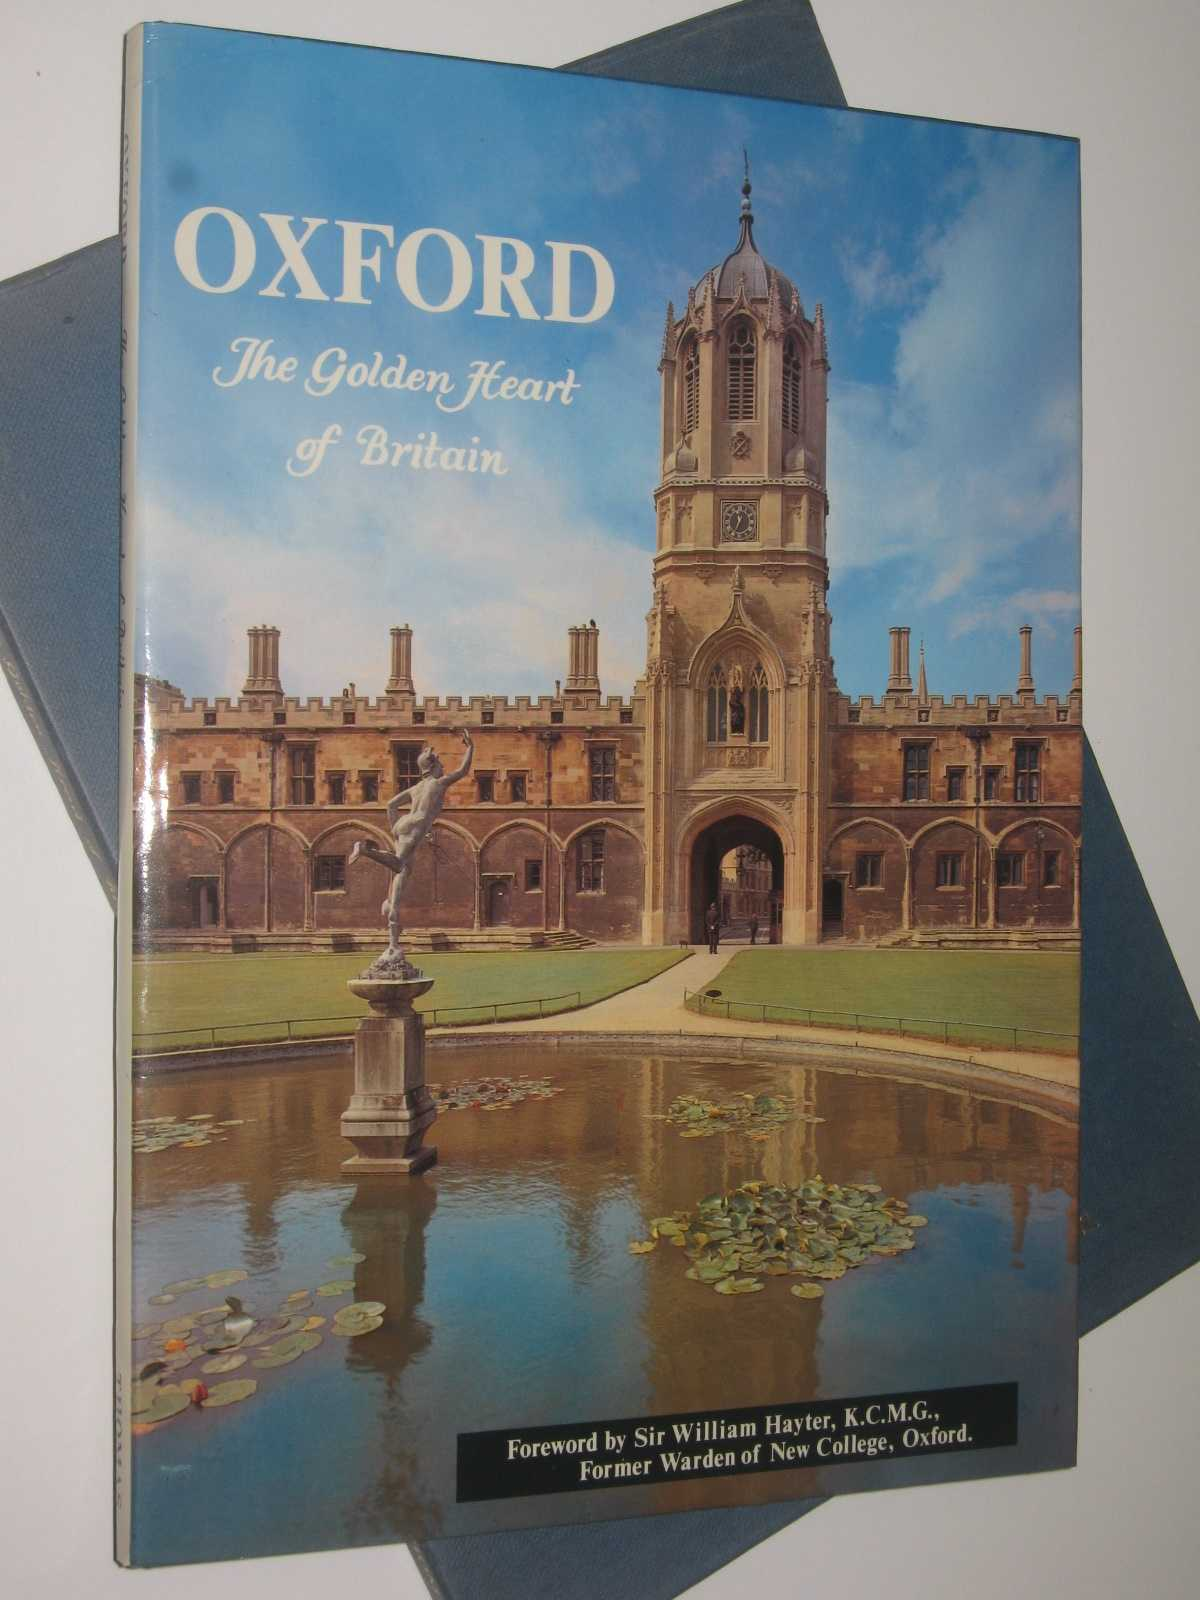 Oxford: The Golden Heart of Britain, Author Not Stated